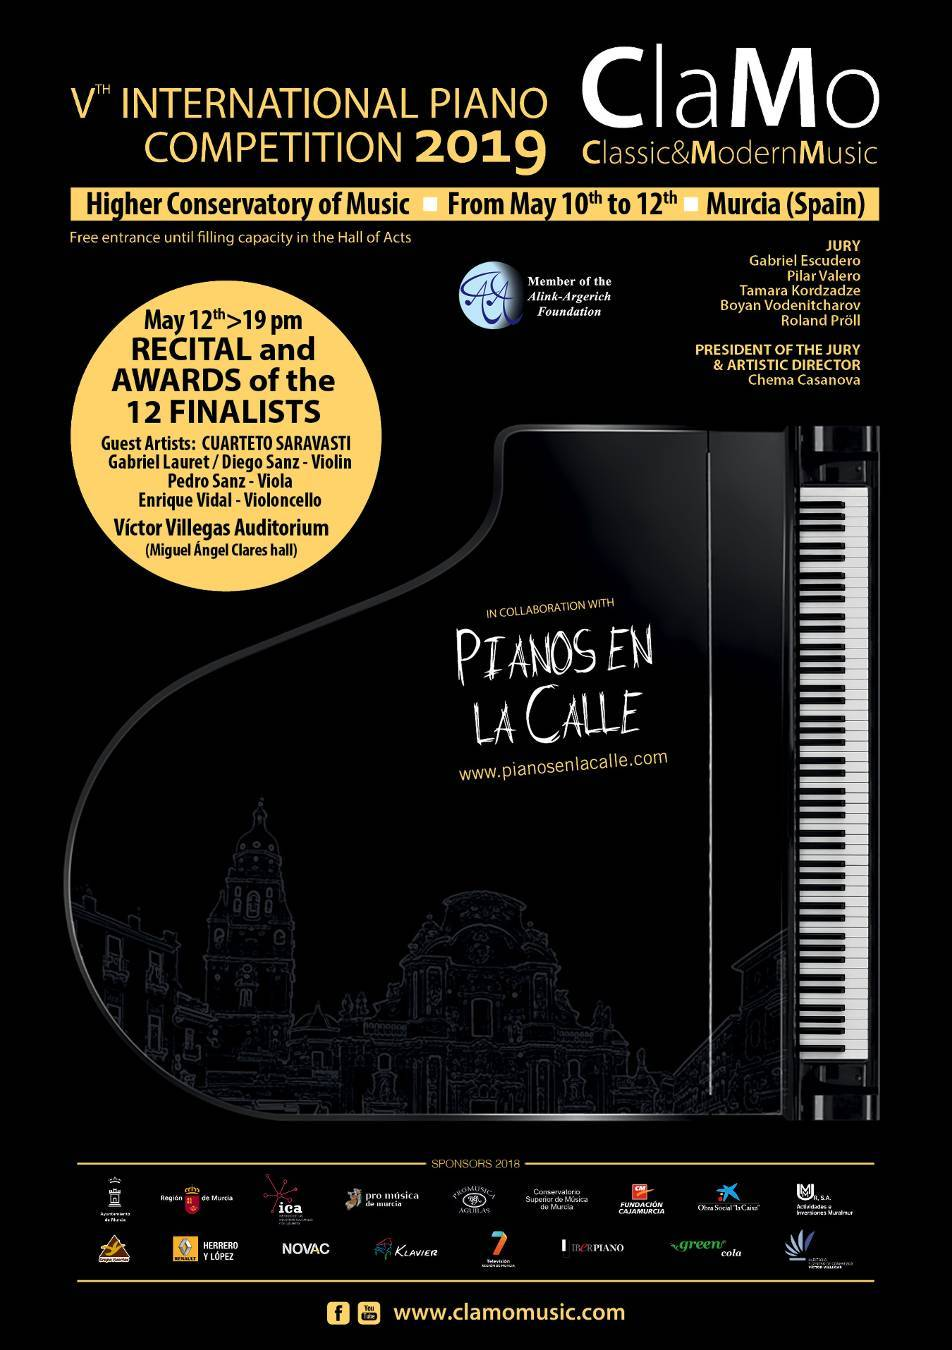 5th Clamo Music International Piano Competition